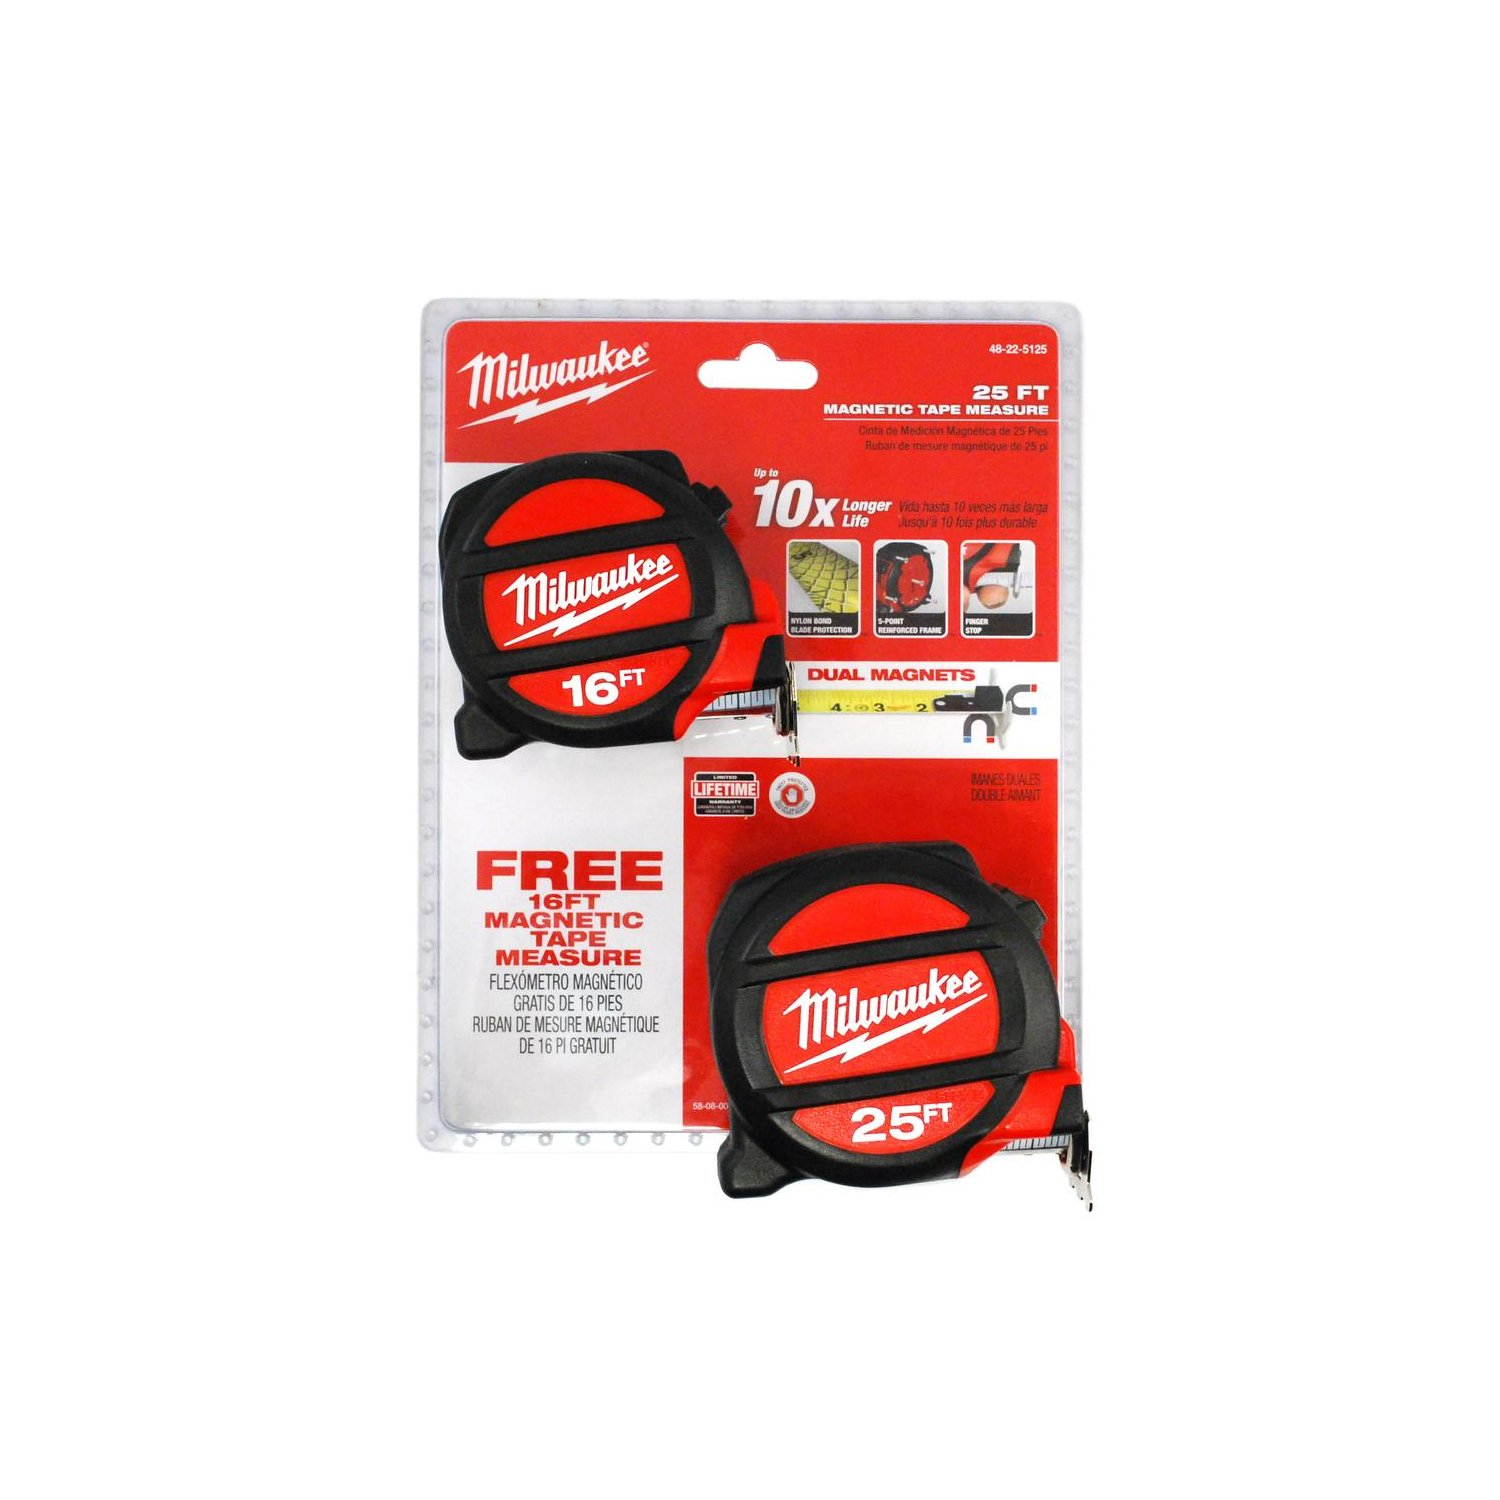 Milwaukee Magnetic Tape Measure 25 ft + Free 16 ft Tape: Amazon.com: Industrial & Scientific